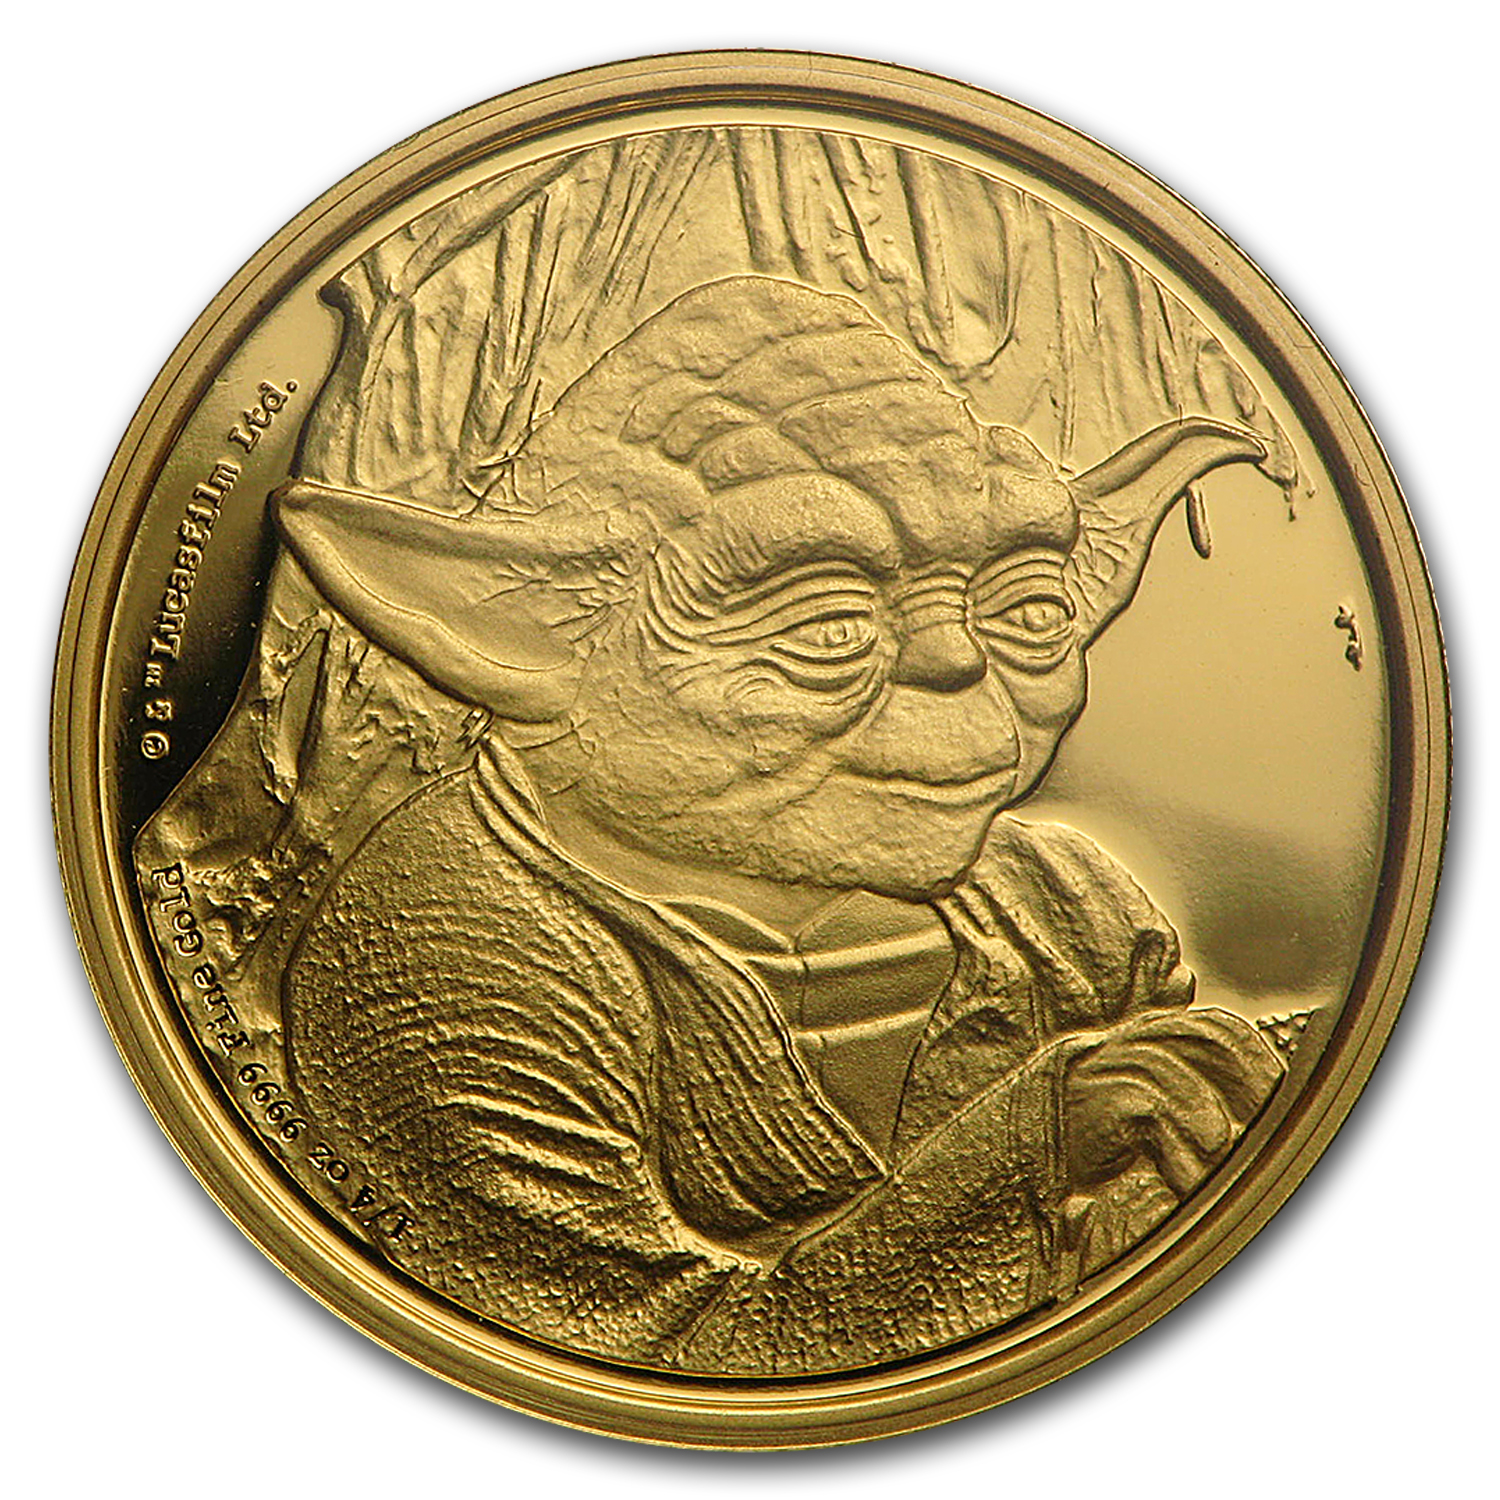 2016 Niue 1/4 oz Gold $25 Star Wars Yoda Proof (Box & COA)